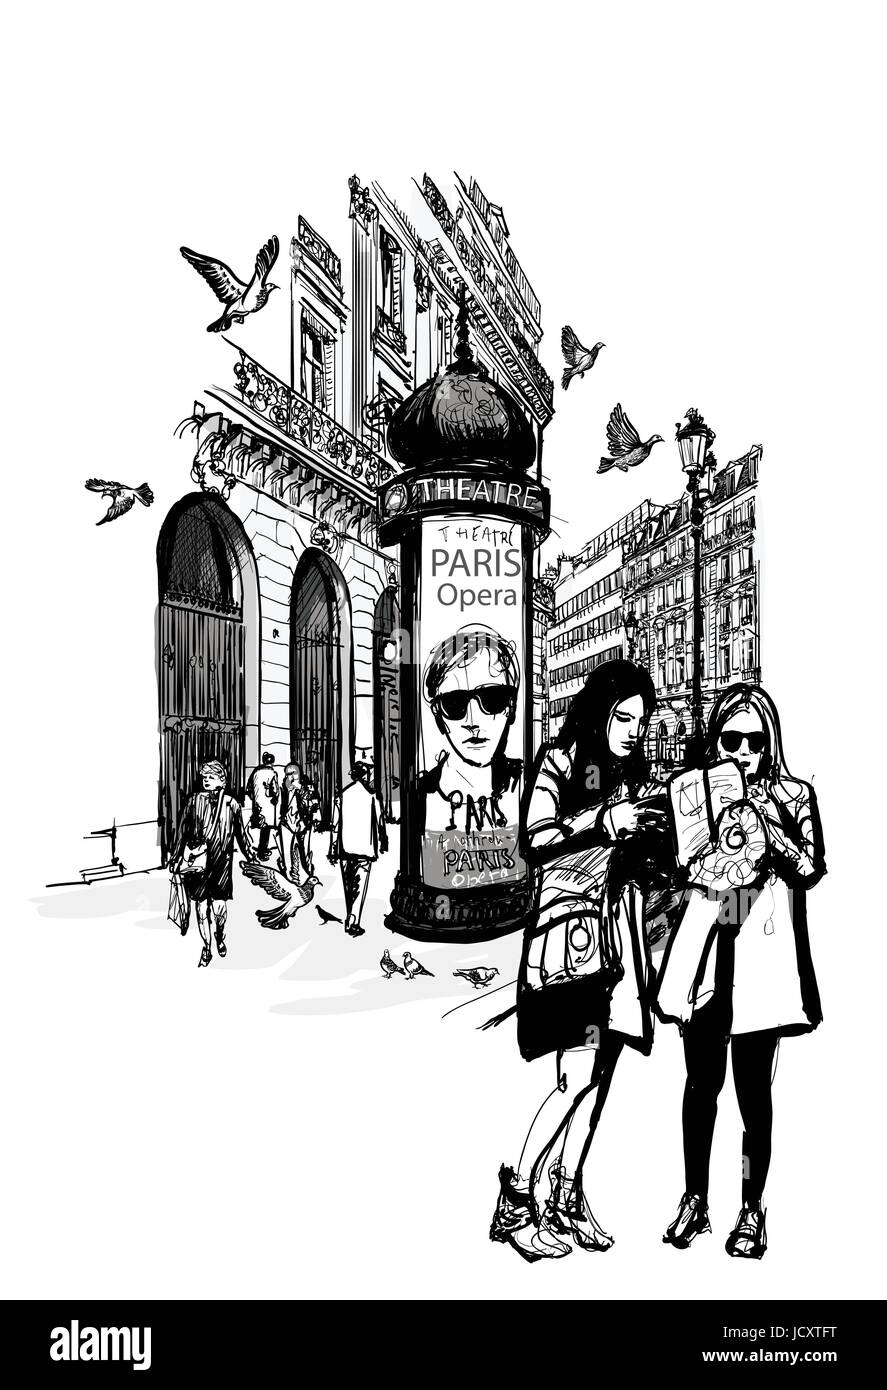 Girls in Paris near opera looking for direction - vector illustration - Stock Vector